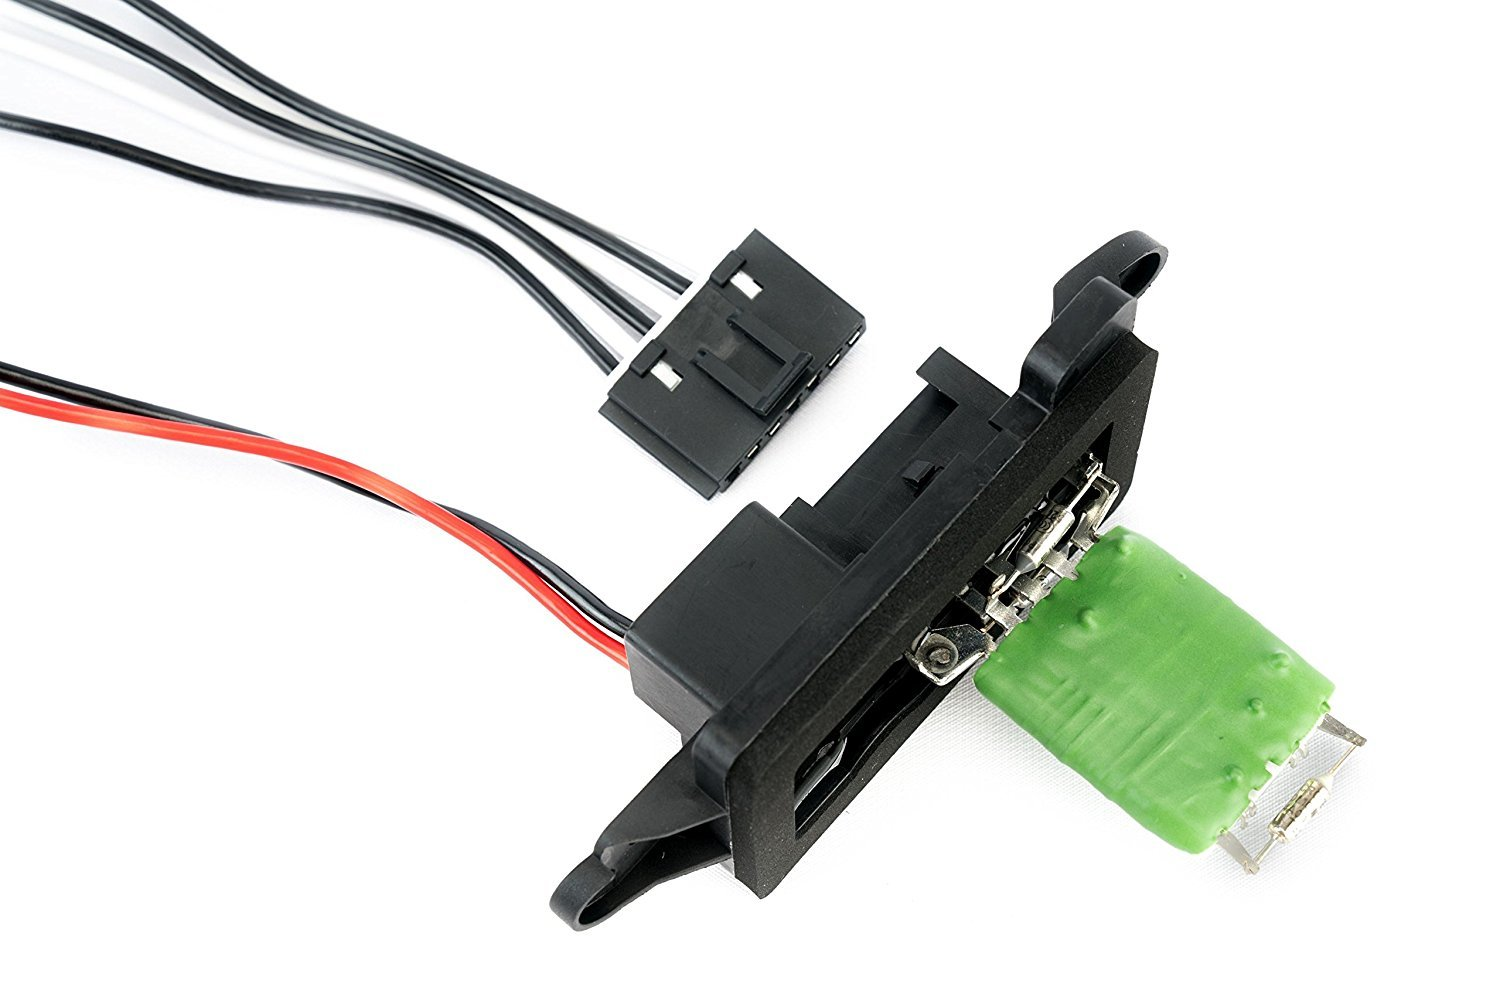 Ac Blower Motor Resistor Kit With Harness Replaces 2001 Chevy Van Heater Wiring Diagram 89019088 973 405 15 81086 22807123 Fits Silverado Tahoe Suburban Avalanche